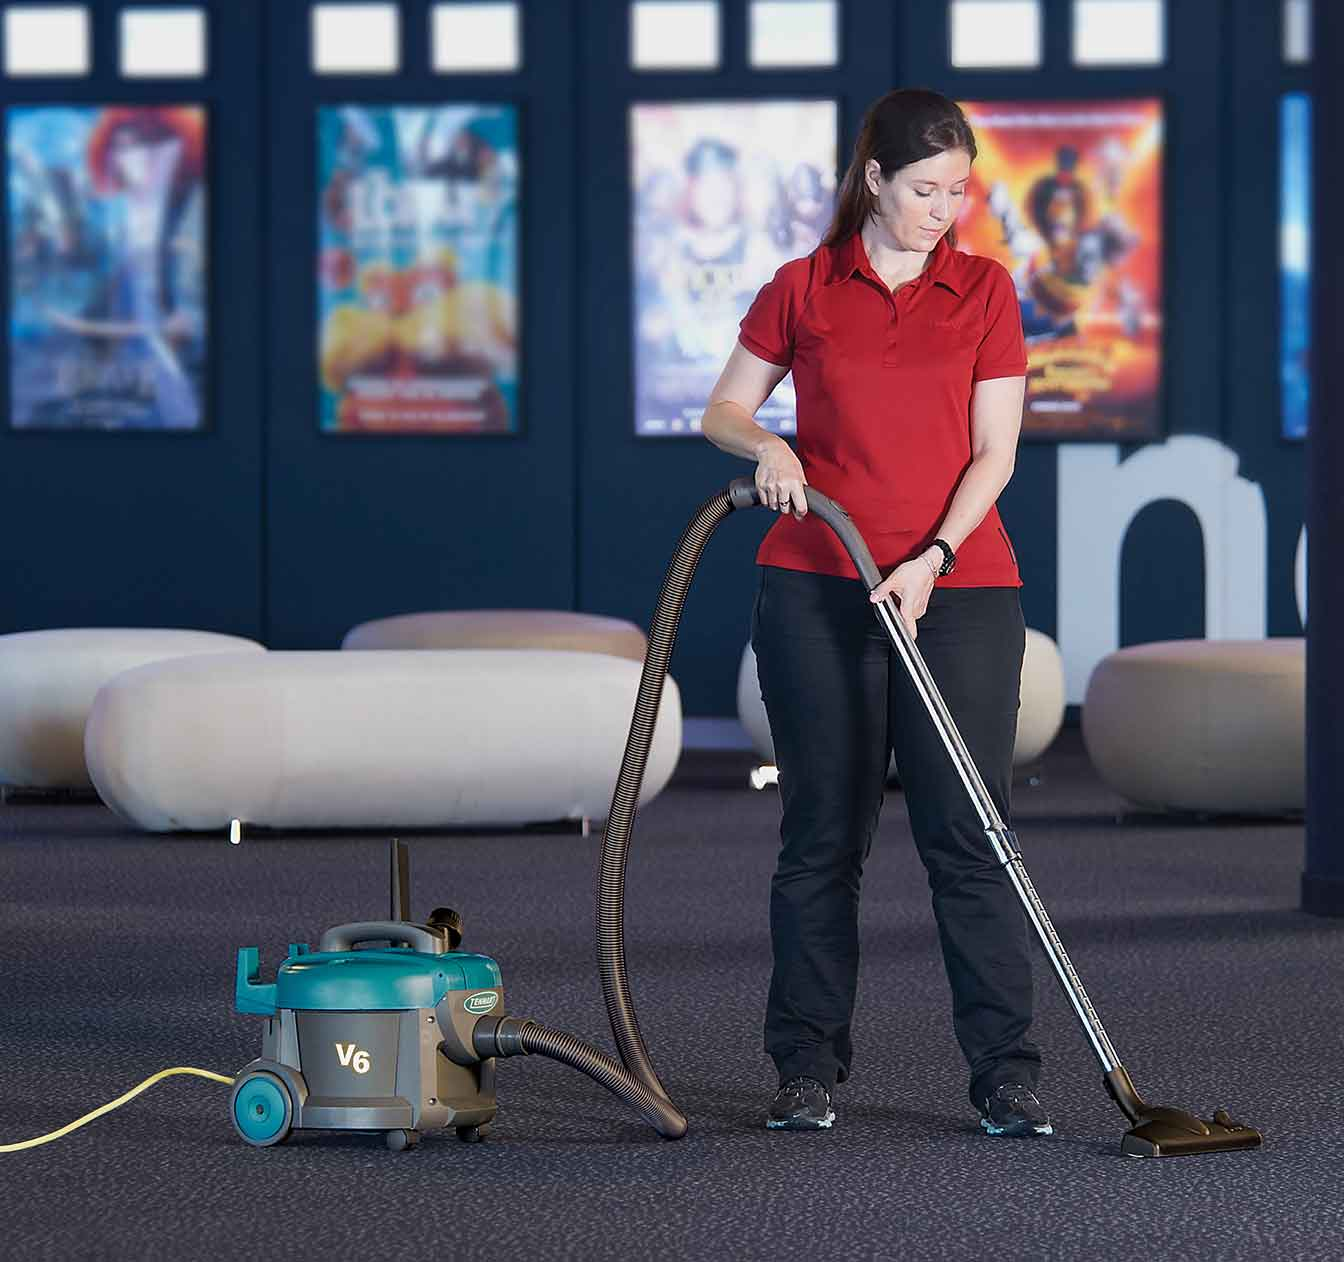 V6 Dry Canister Vacuum cleaning a movie theater.